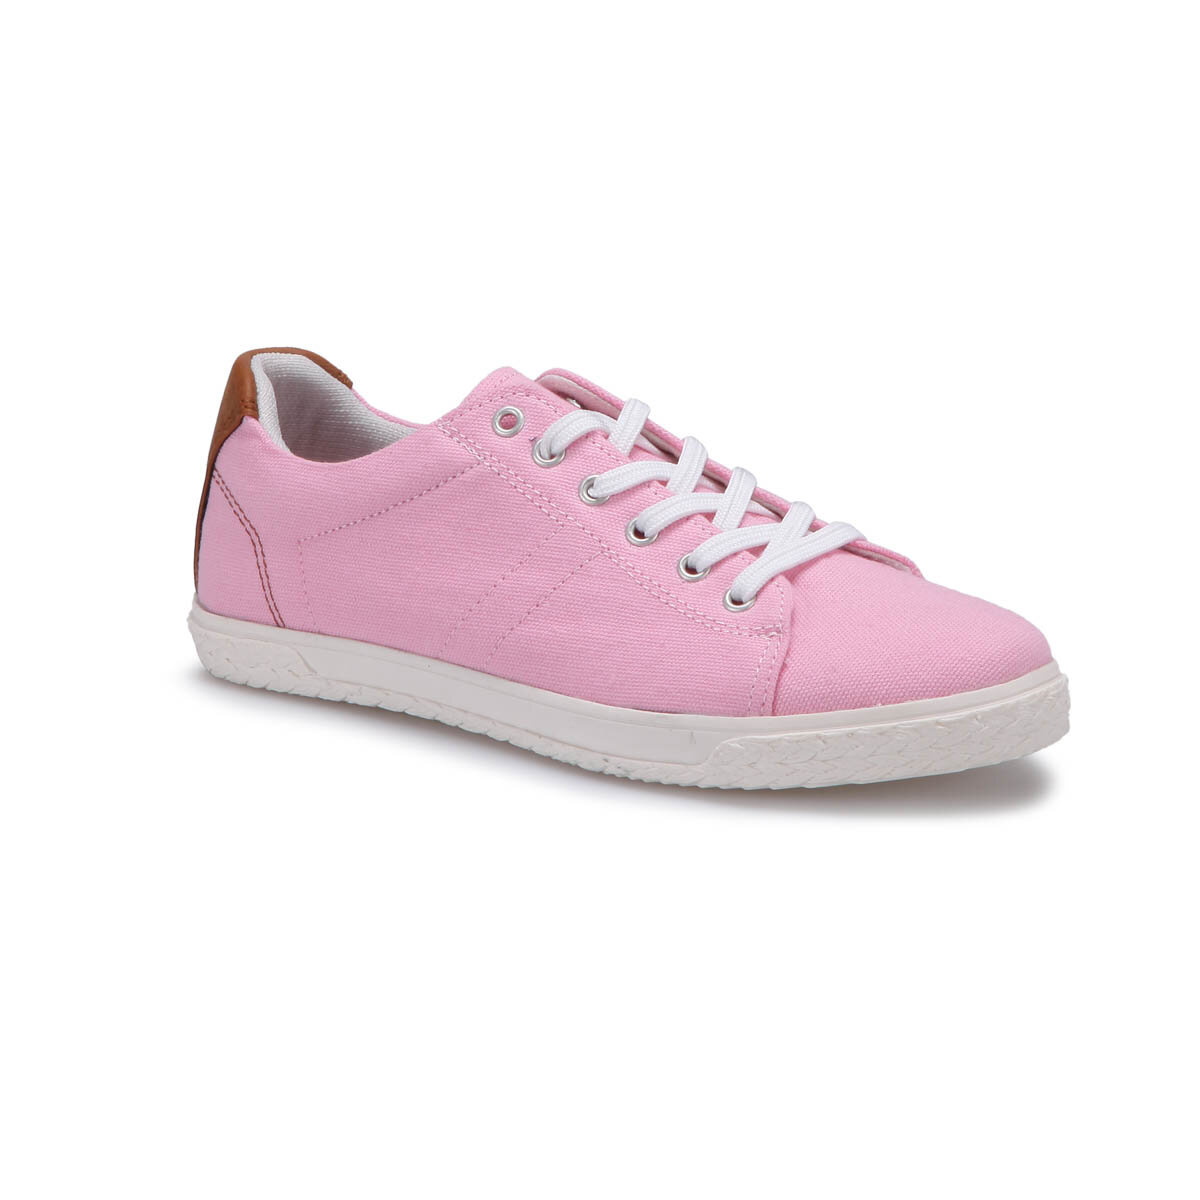 FLO U1808 Pink Women Casual Shoes Art Bella